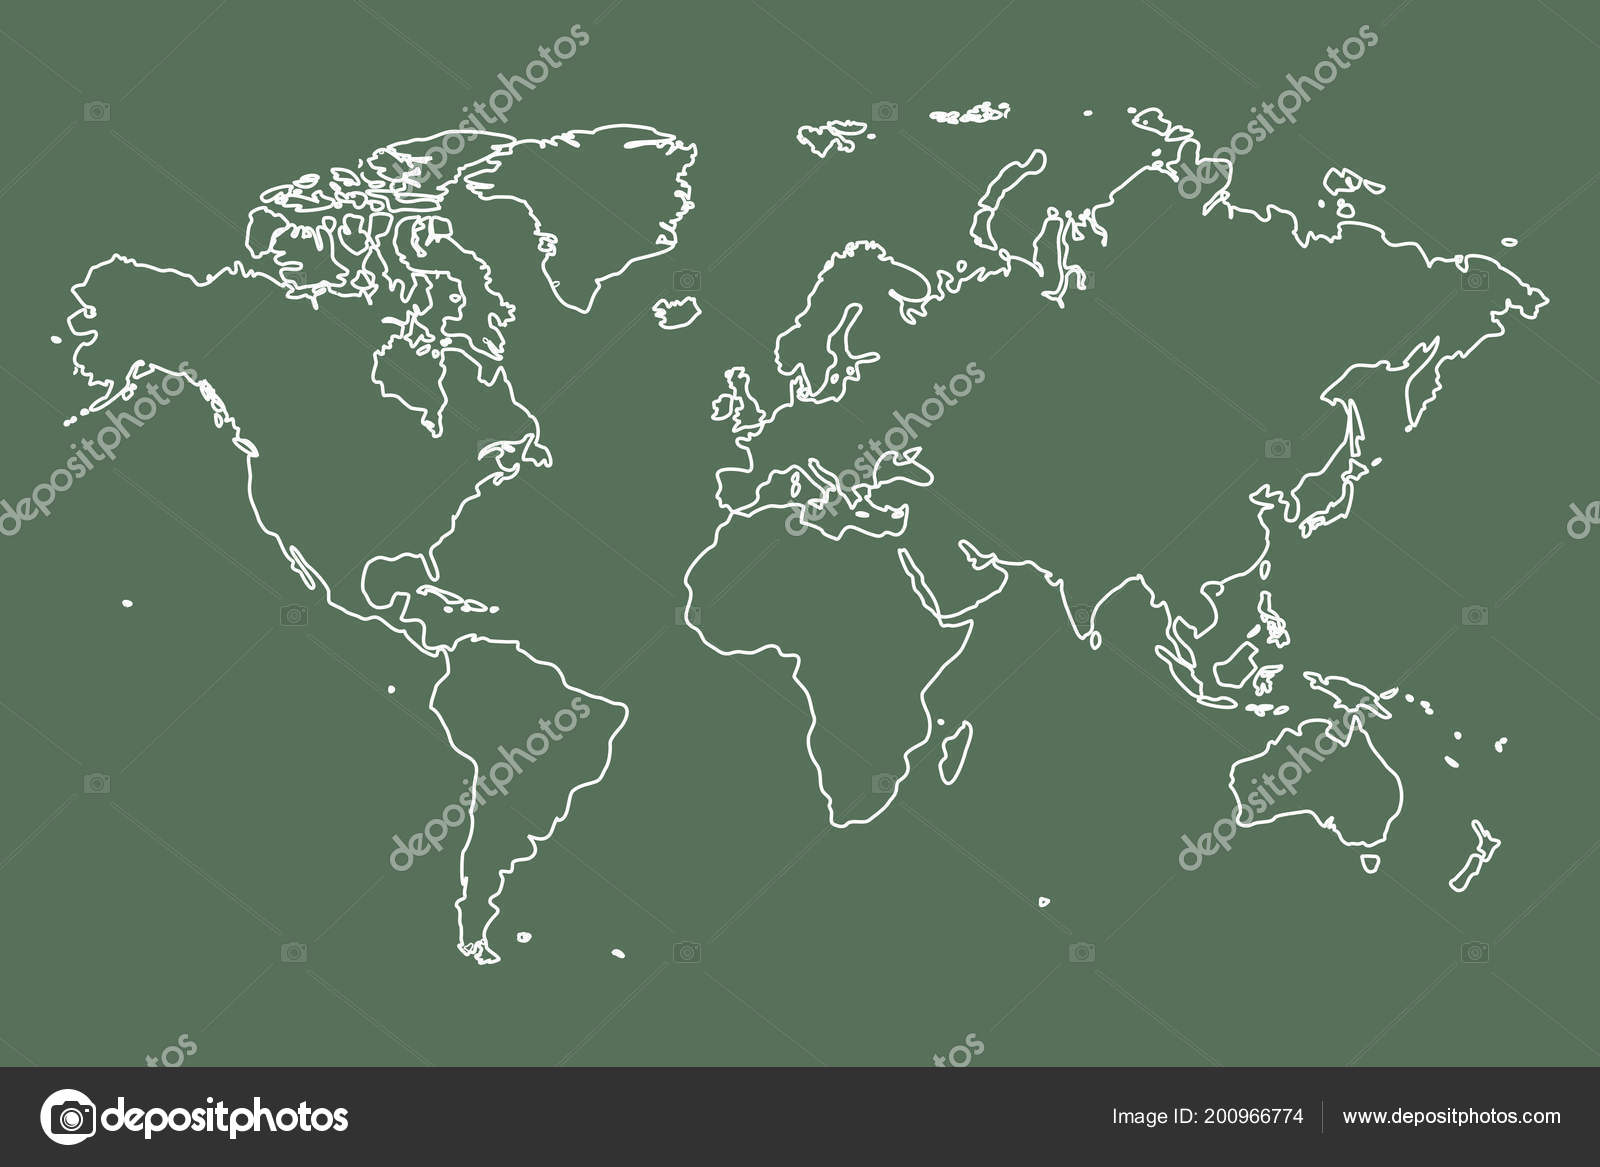 Chalk board style world map archivo imgenes vectoriales hichako chalk board style world map vector de hichako gumiabroncs Images